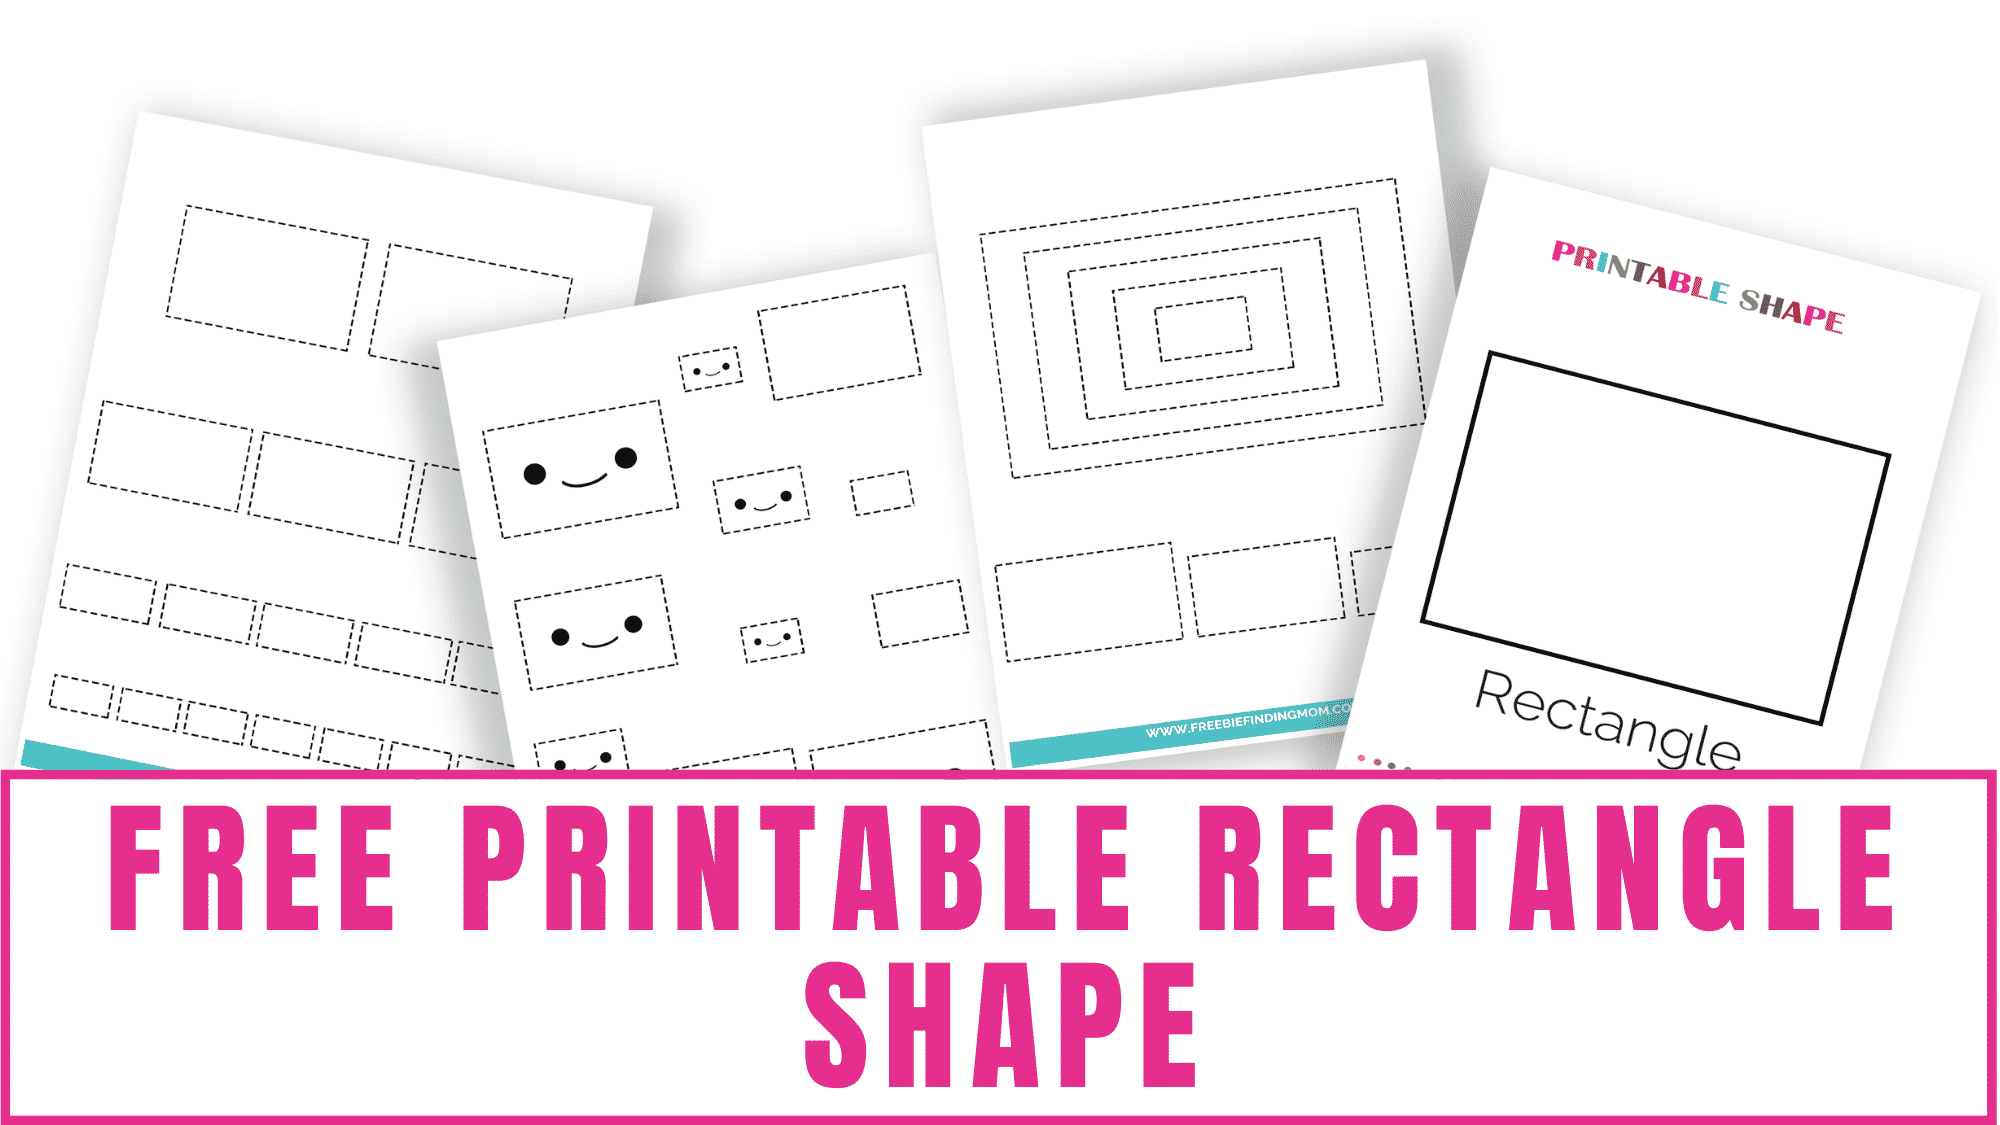 This free printable rectangle shape can be used by students of all ages. Toddlers can make it a shapes coloring page and older kids can use it to learn perimeter or area.